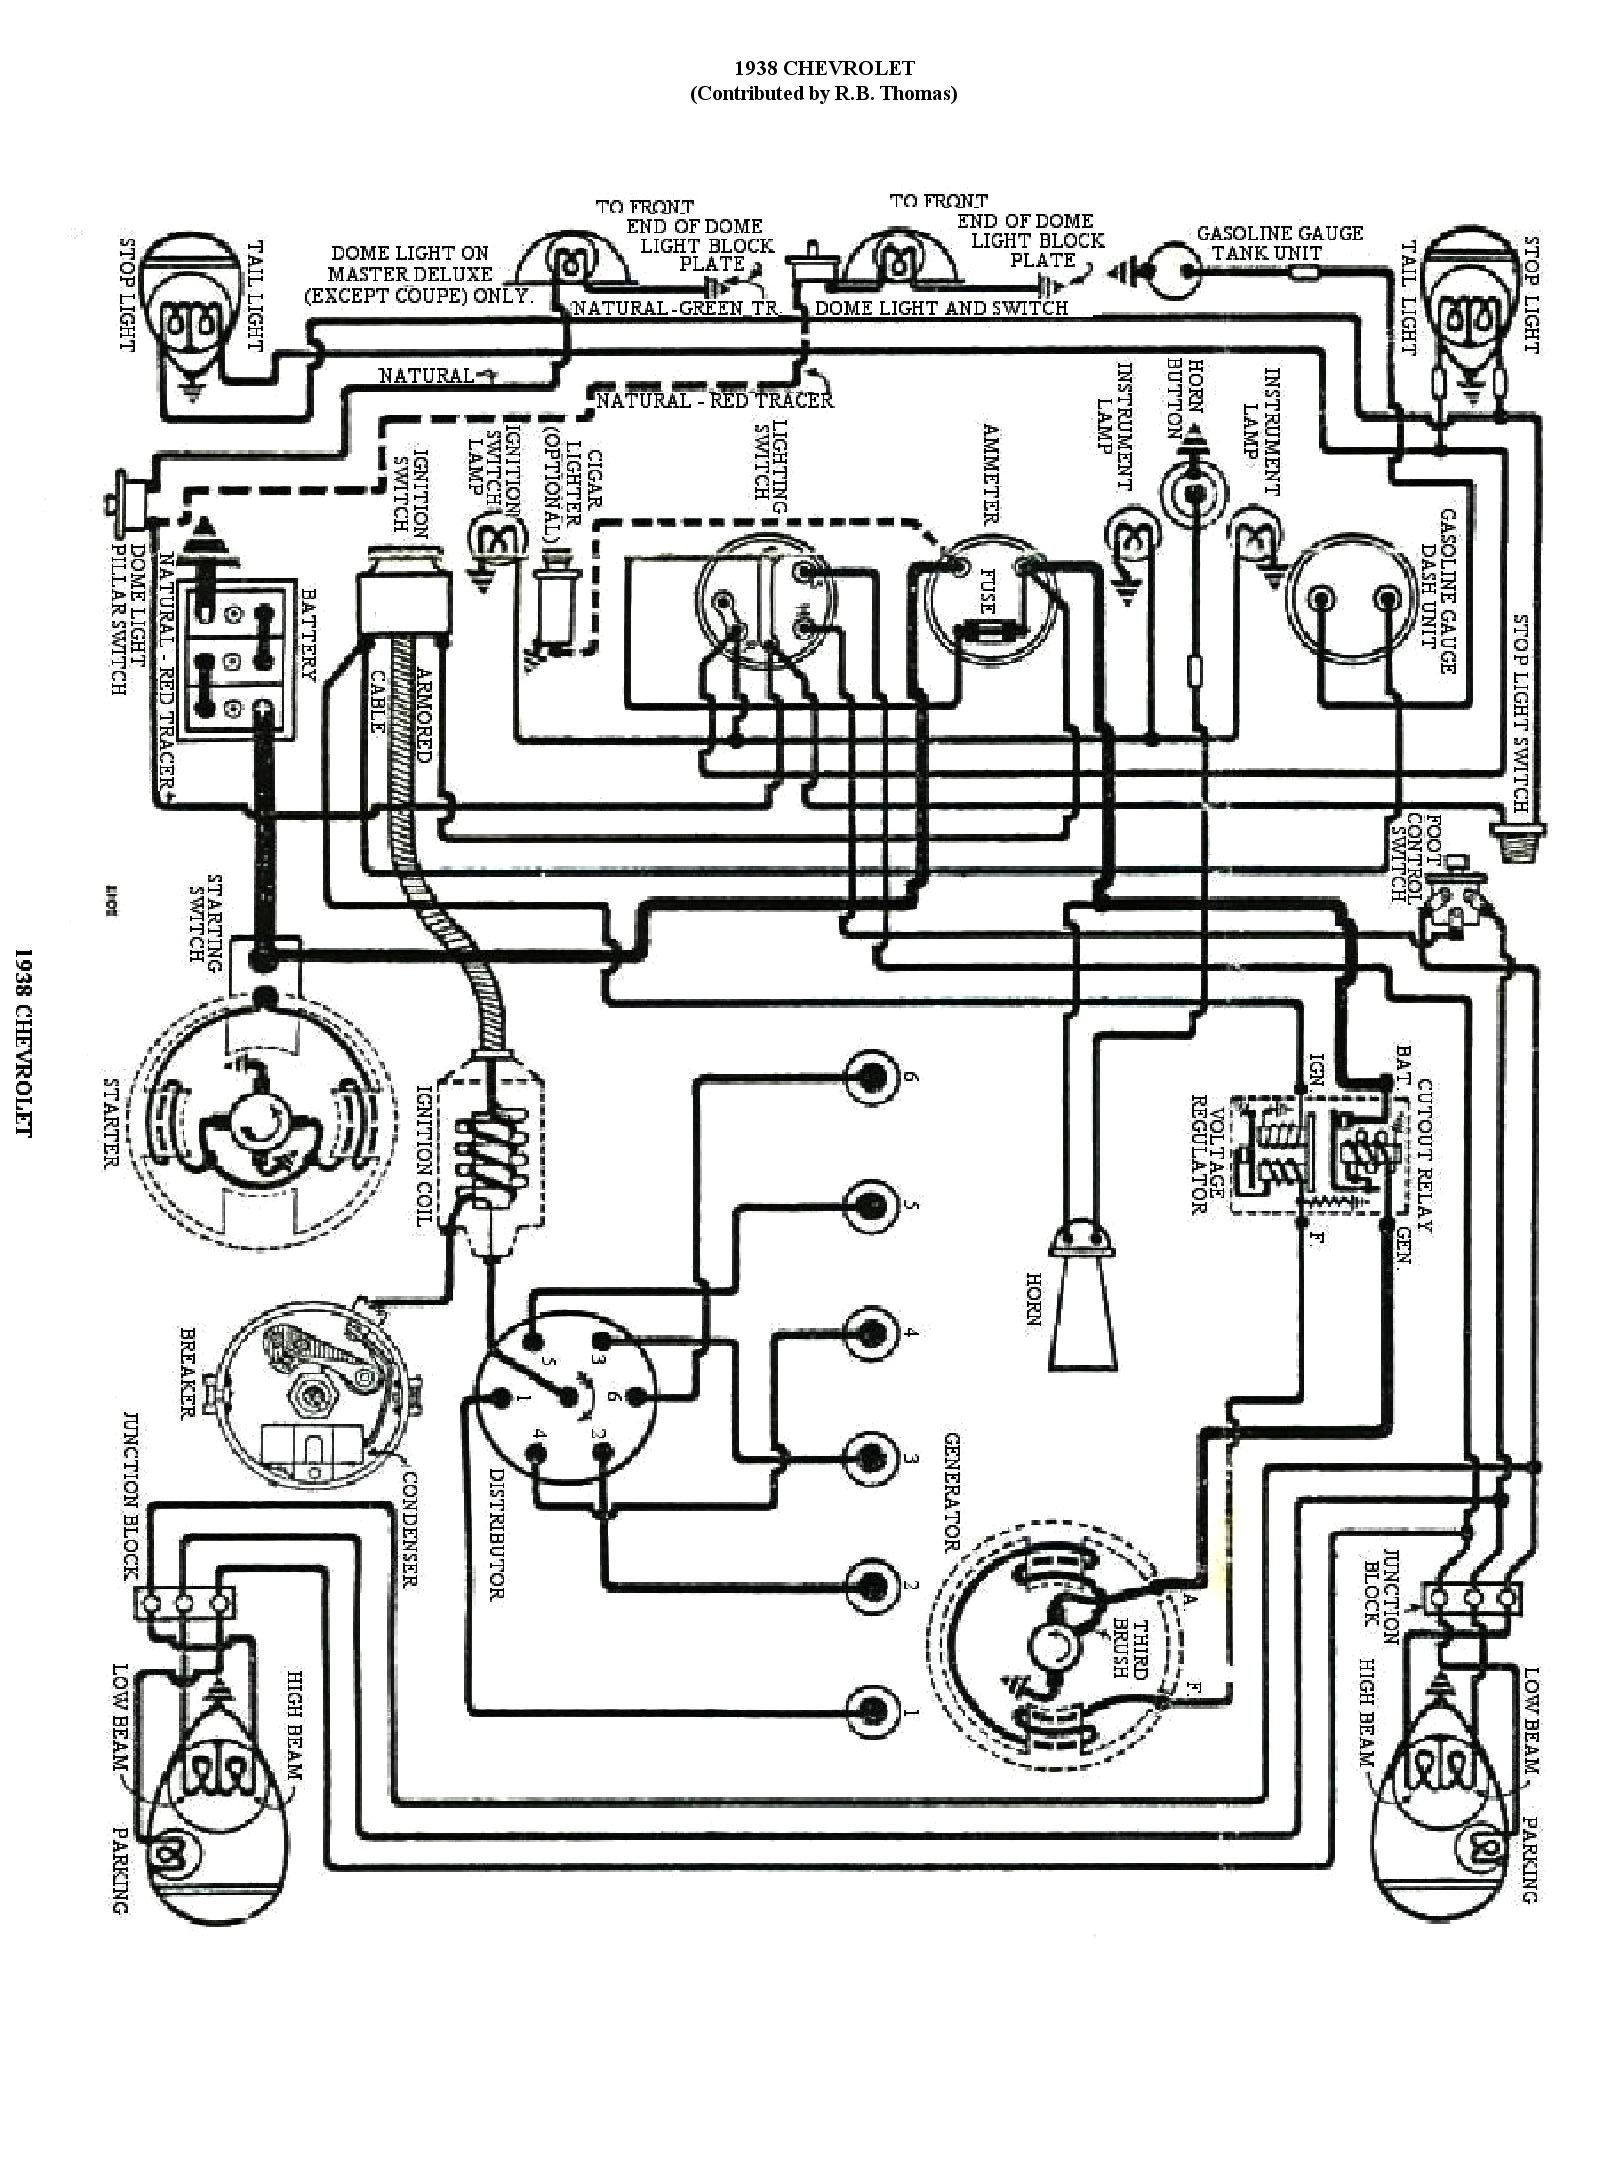 38wiring chevy wiring diagrams 6 volt universal wiring harness at panicattacktreatment.co